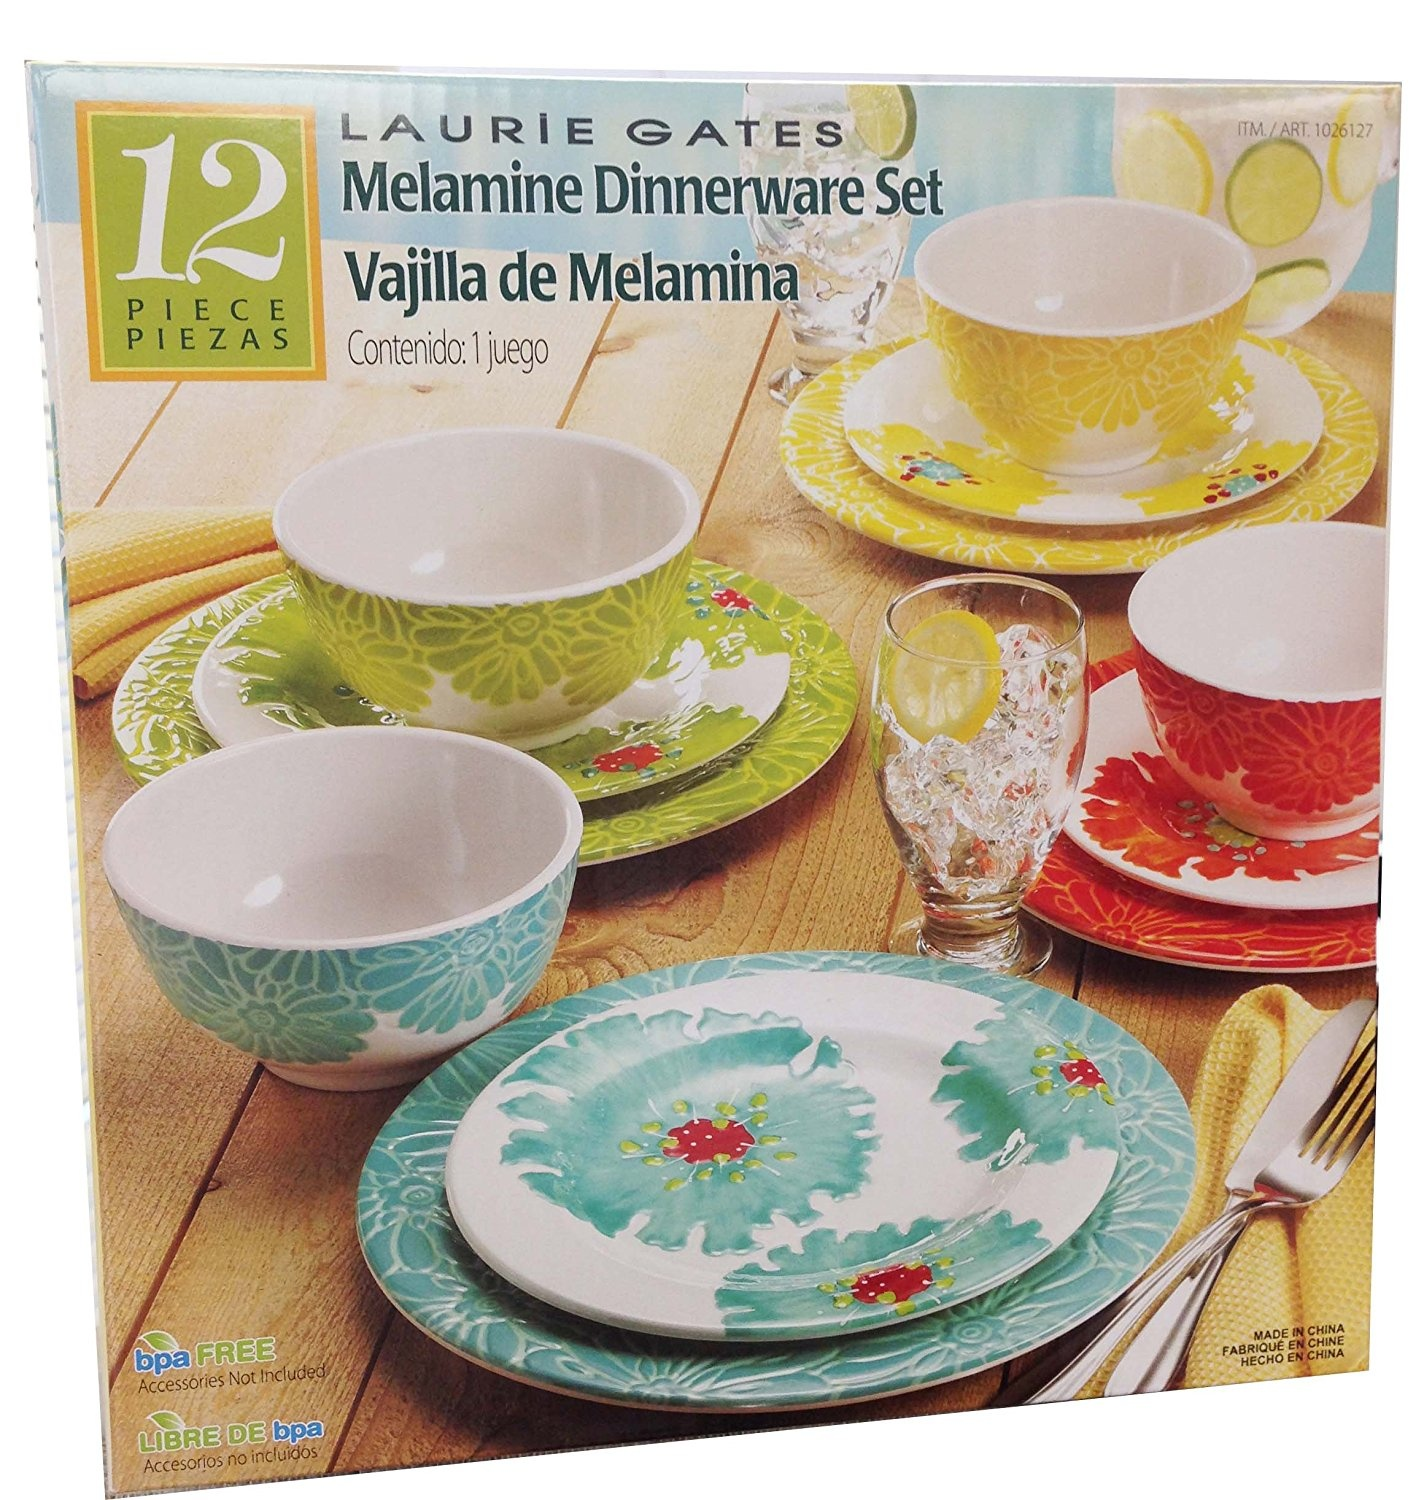 Laurie Gates - 12 Piece Melamine Dinnerware Set by Laurie Gates - Shop Online for Kitchen in Australia & Laurie Gates - 12 Piece Melamine Dinnerware Set by Laurie Gates ...